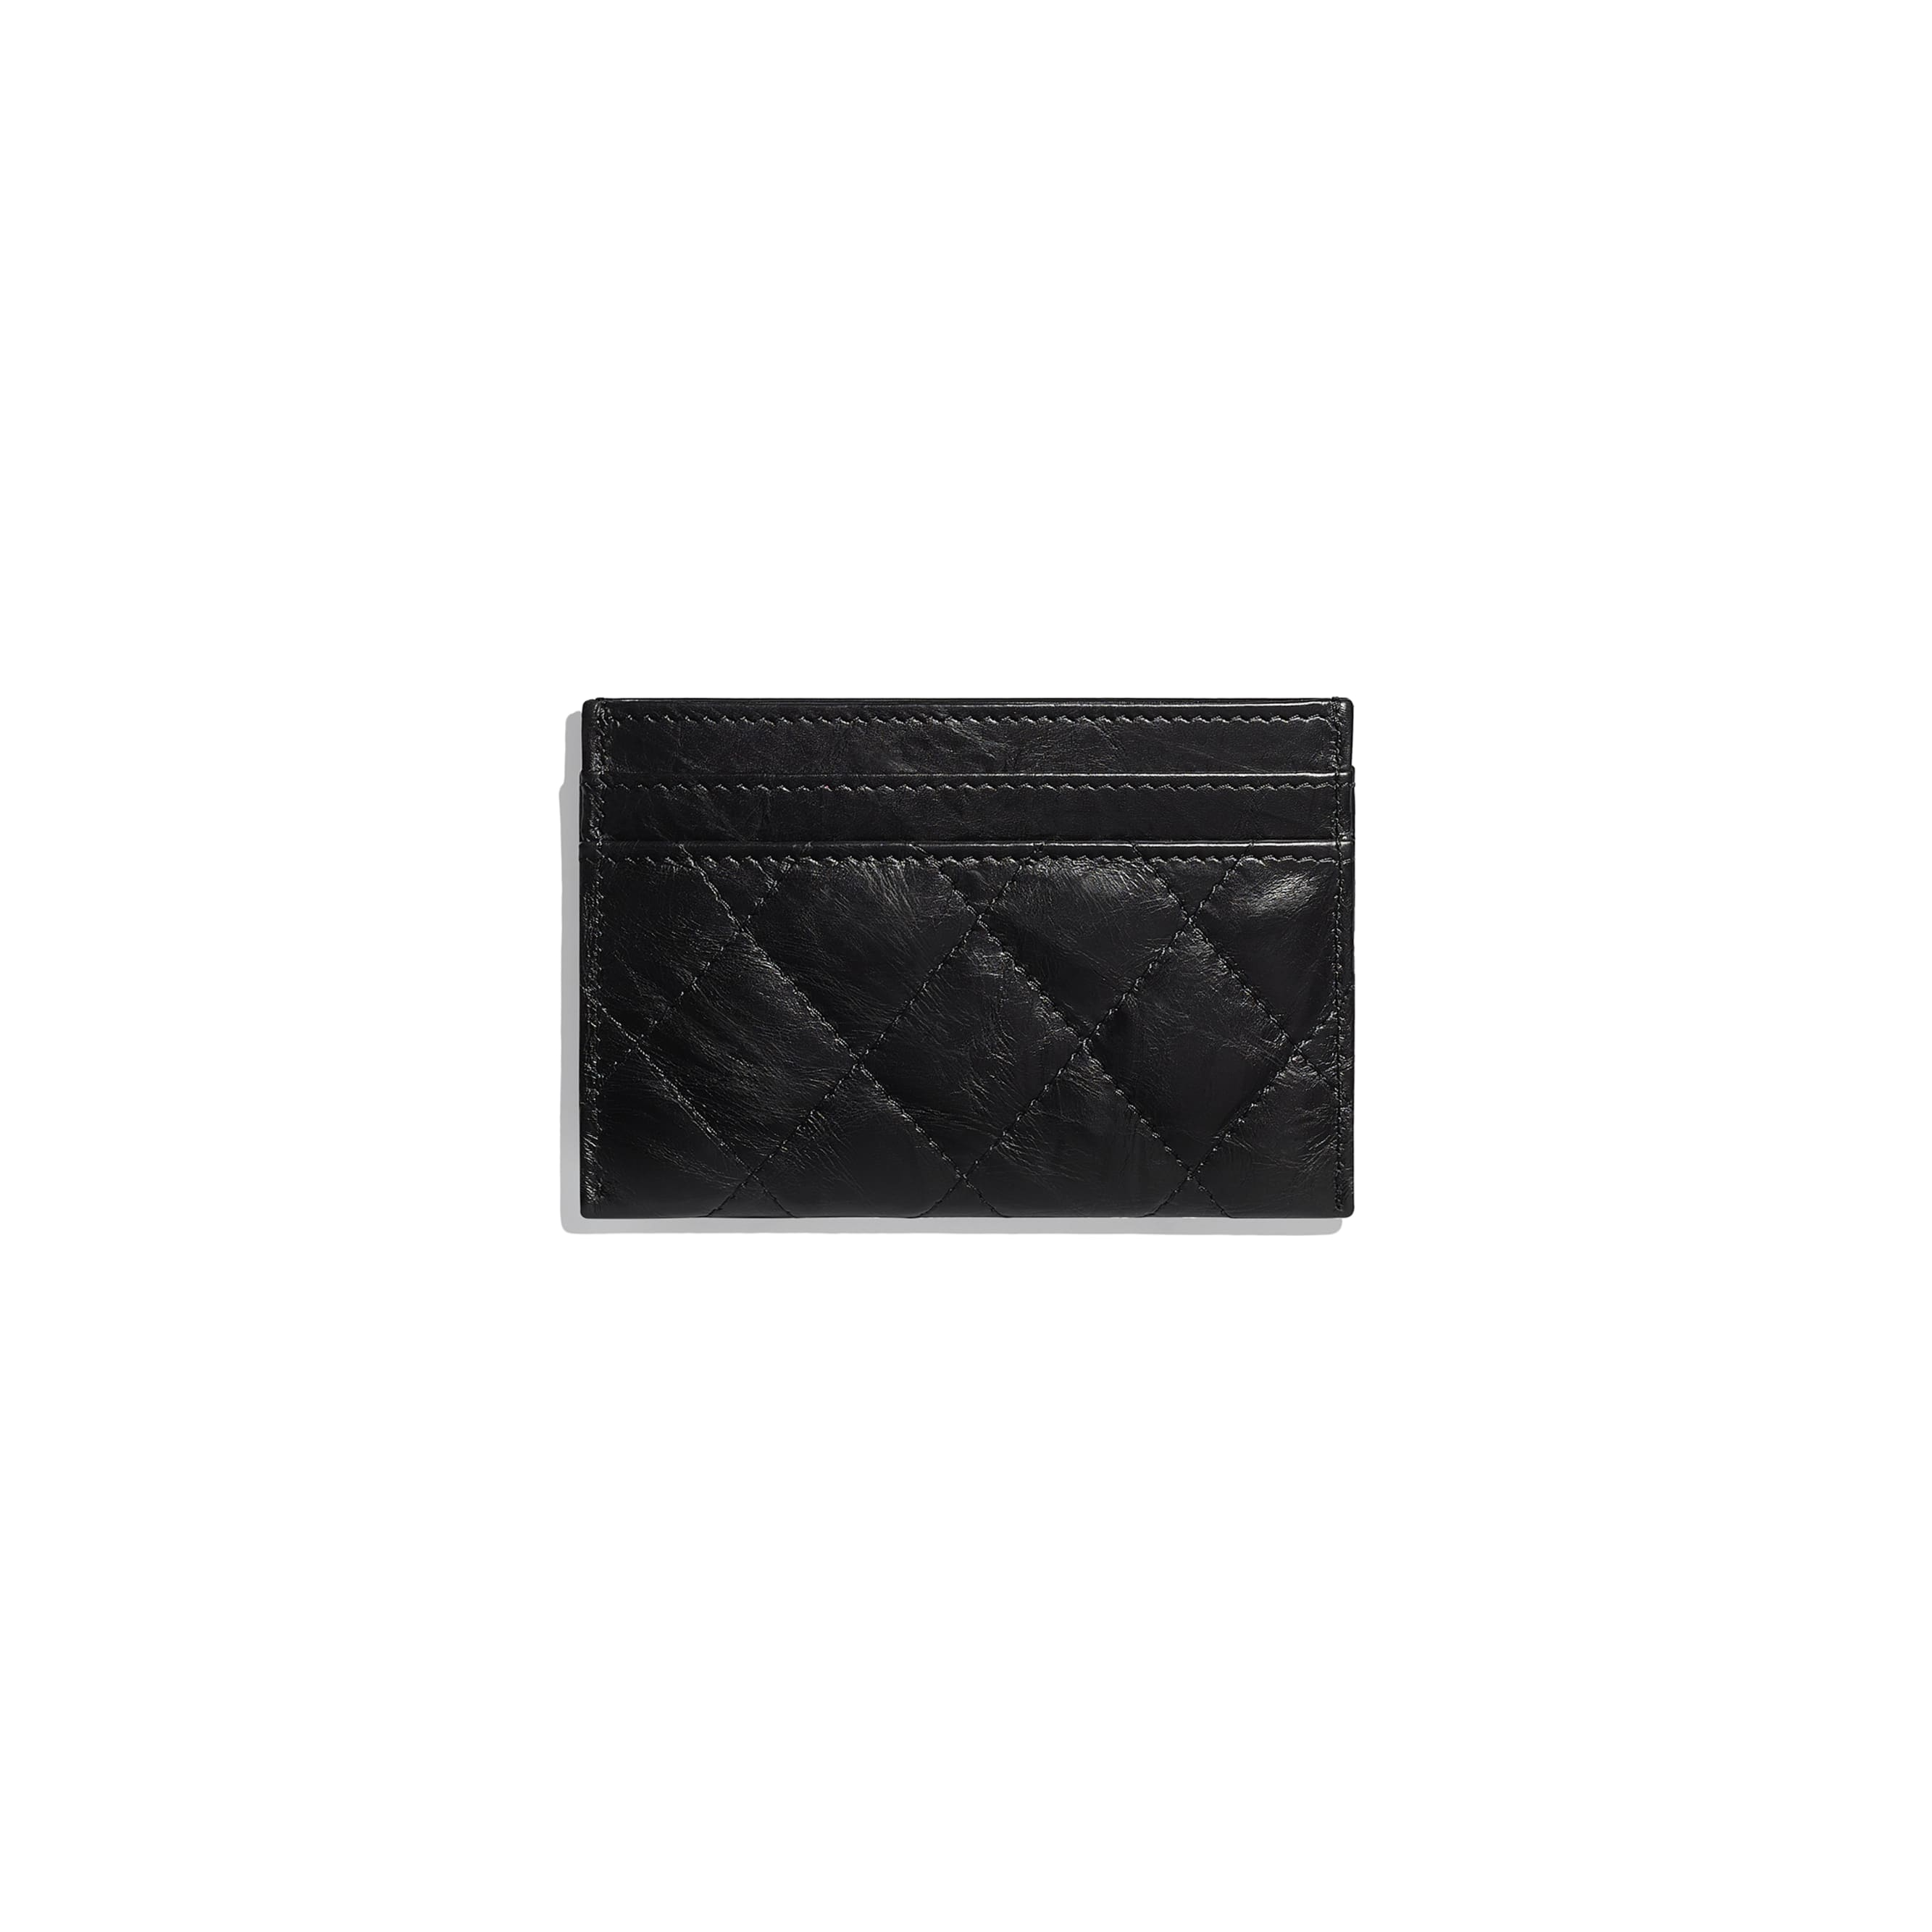 2.55 Card Holder - Black - Aged Calfskin & Gold-Tone Metal - CHANEL - Alternative view - see standard sized version